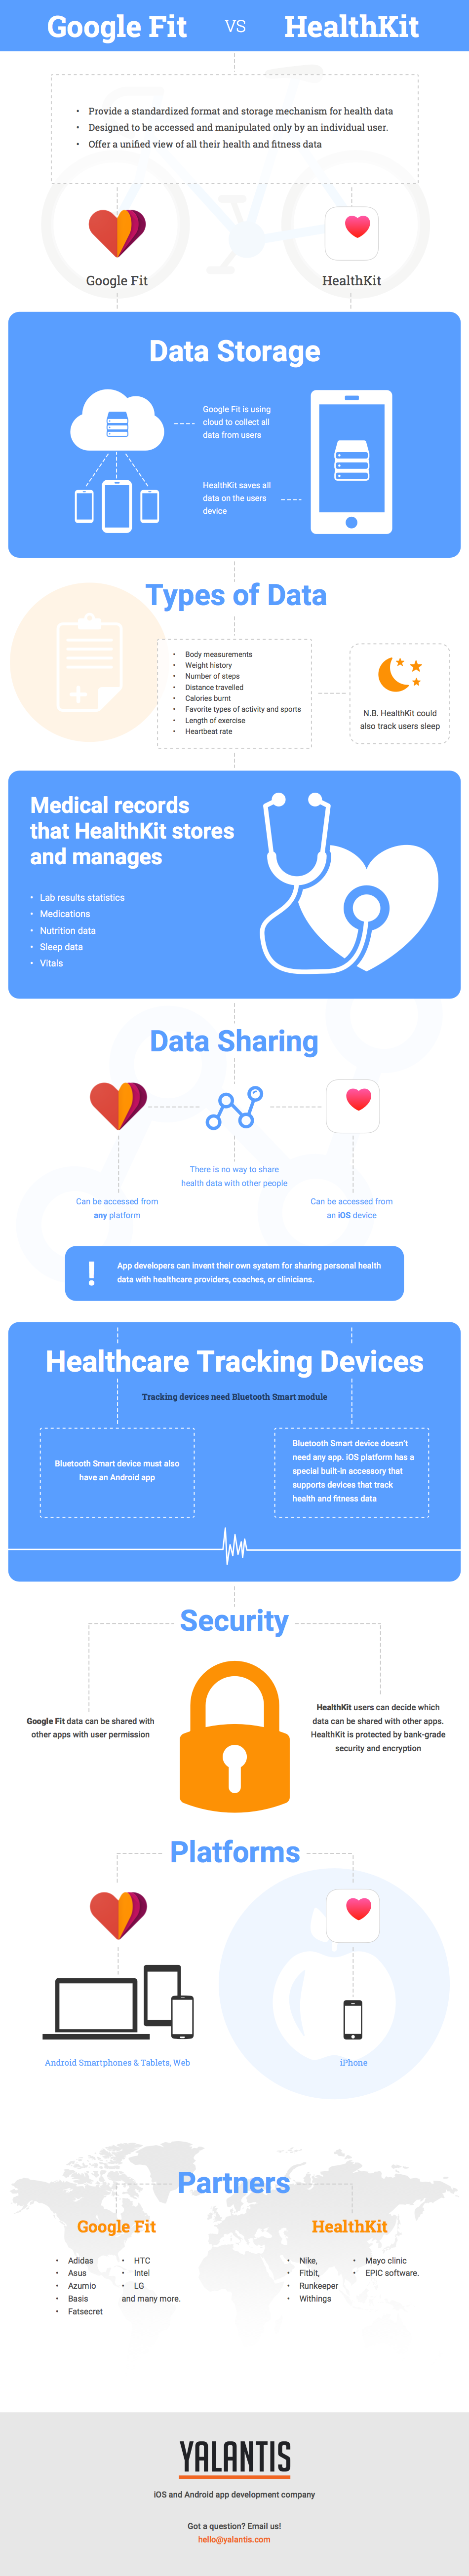 How Can HealthKit and Google Fit Help You Develop Healthcare